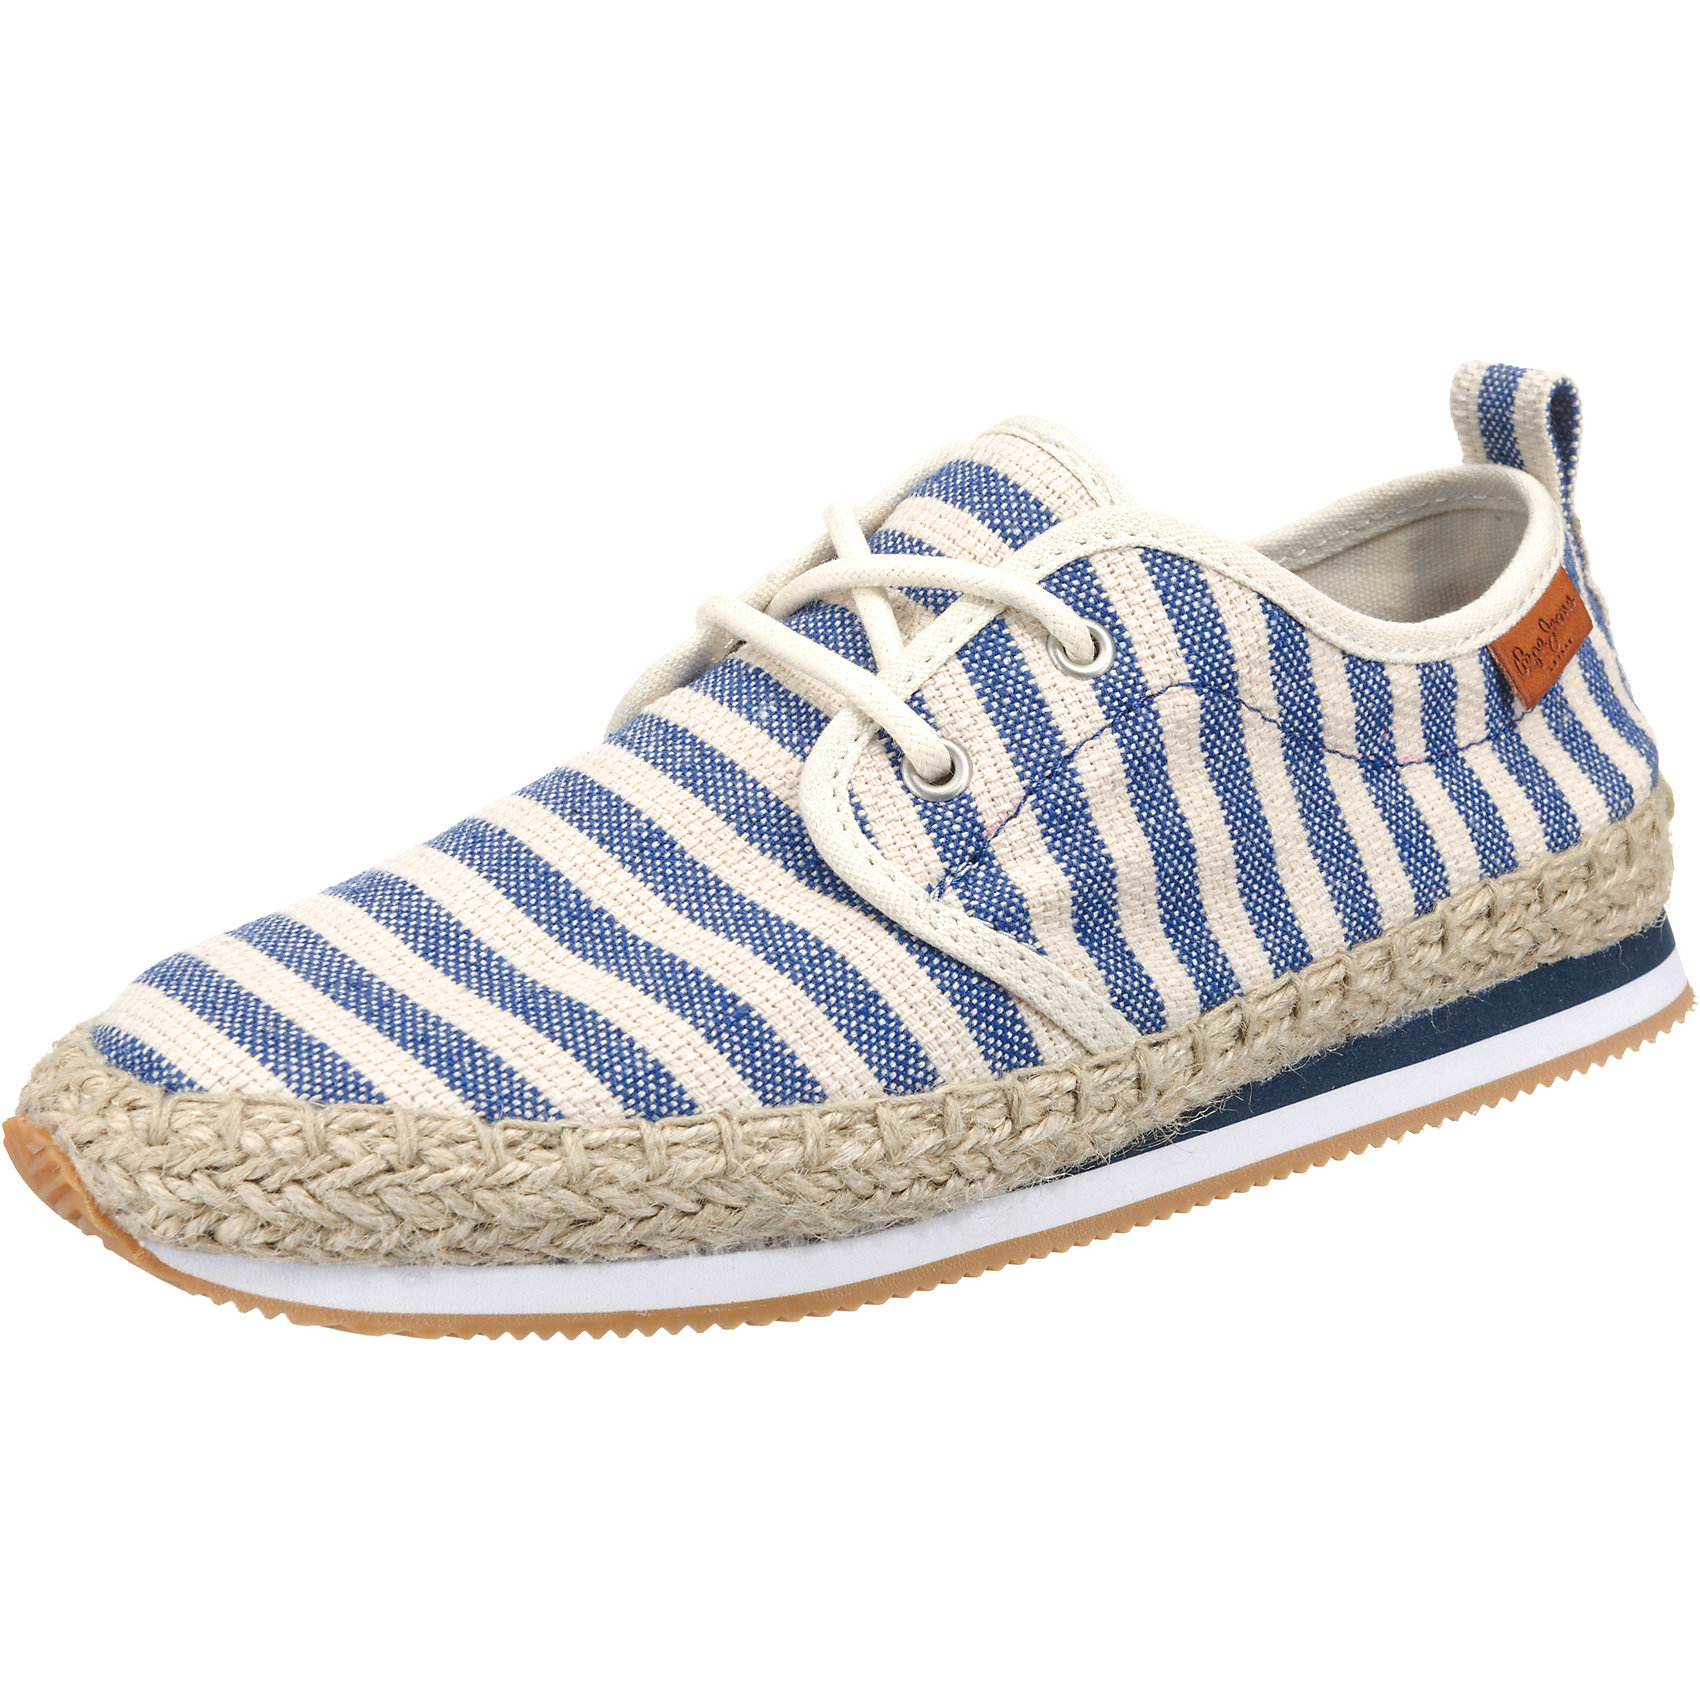 separation shoes 654a7 dcb3c ... NIKE ROSHE TWO FLYKNIT V2 MENS RUNNING SHOES - MENS SIZE 9 5bbad7 ...